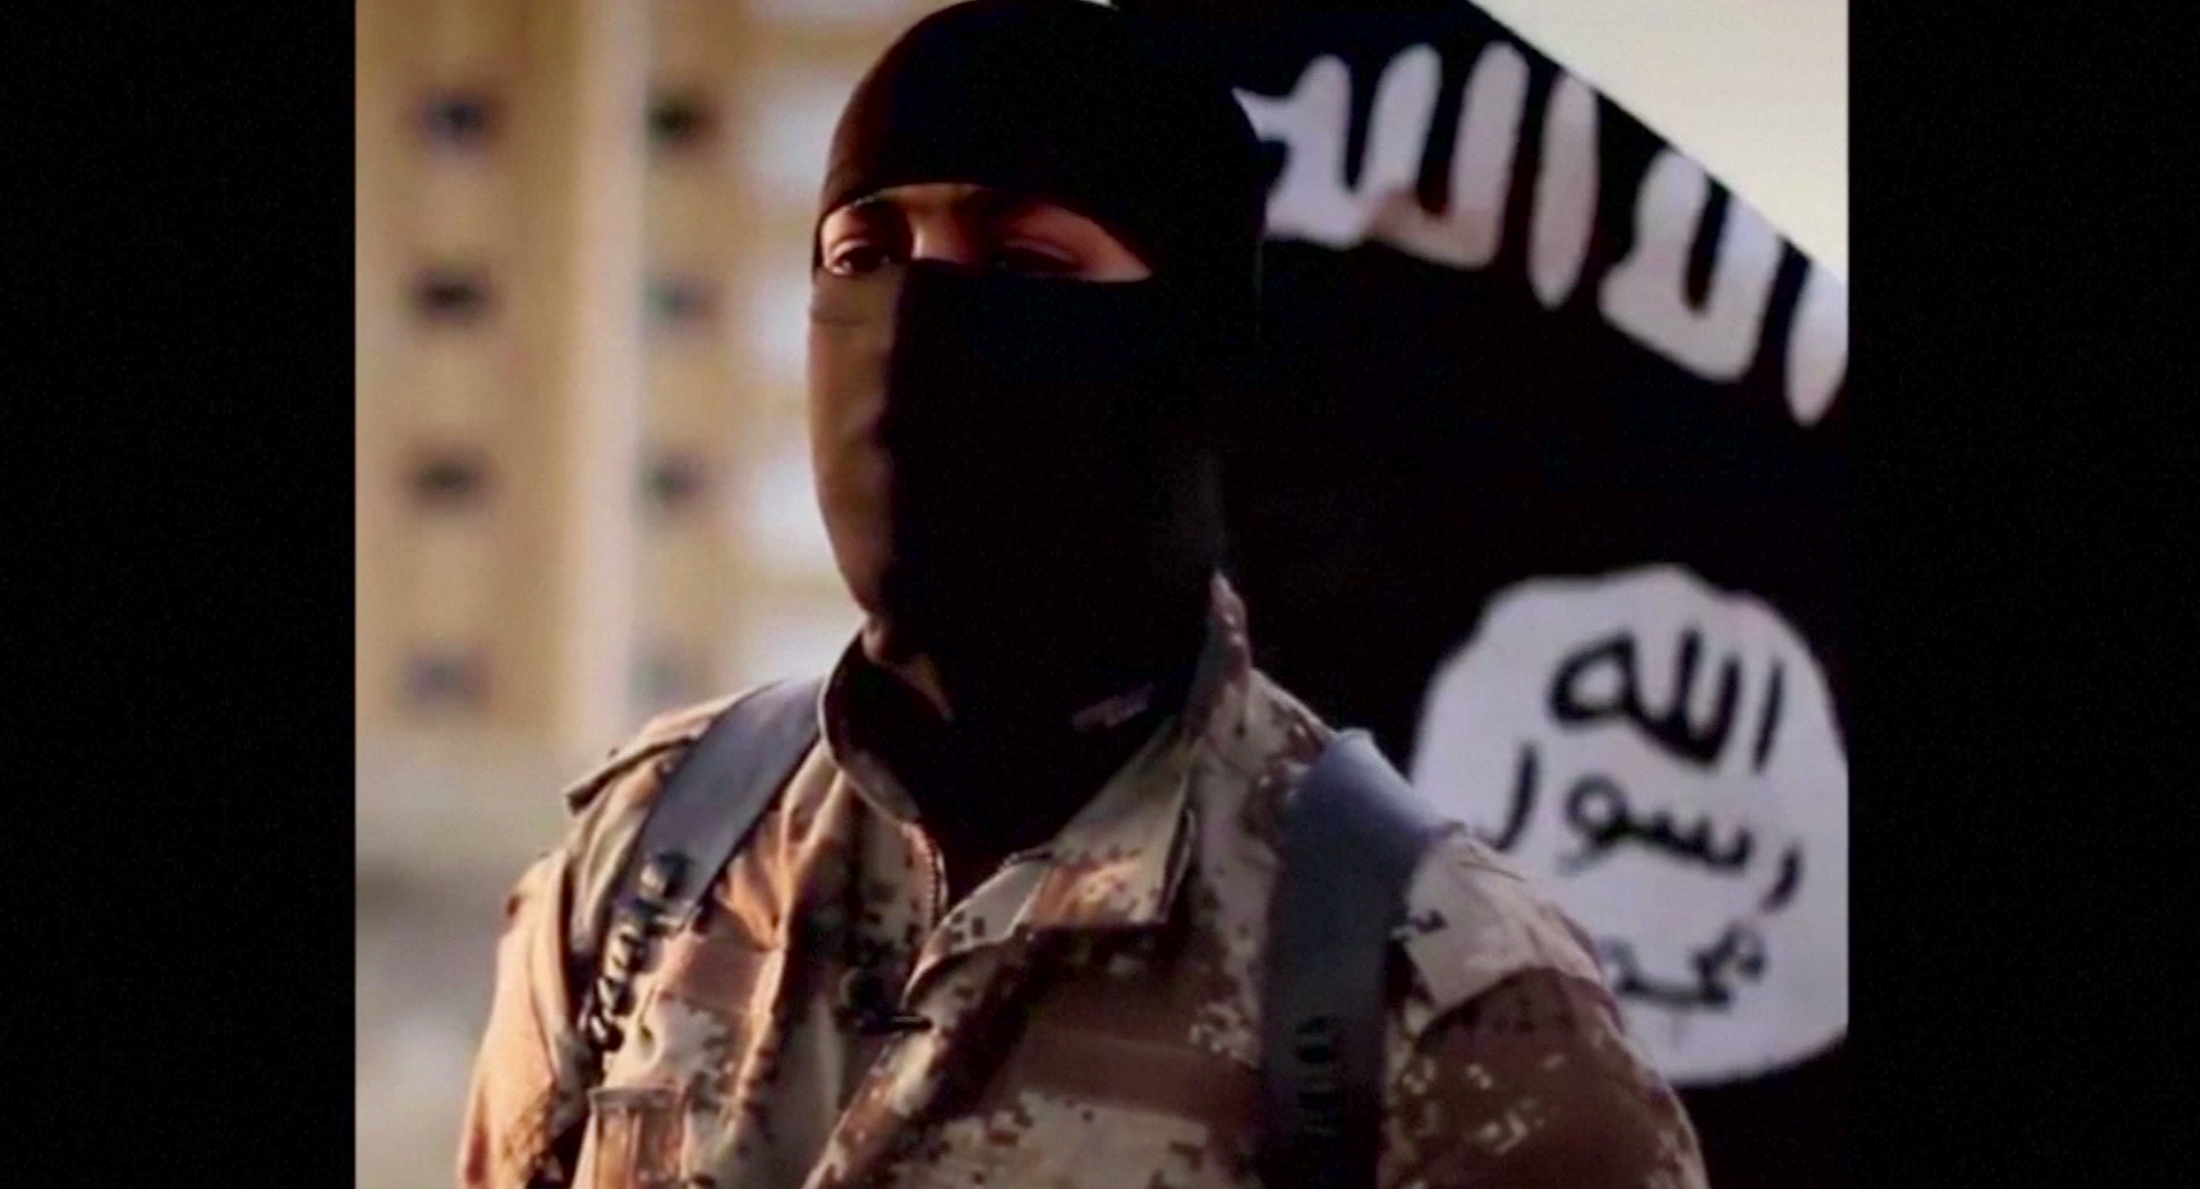 ISIL is using the language barriers within its ranks to